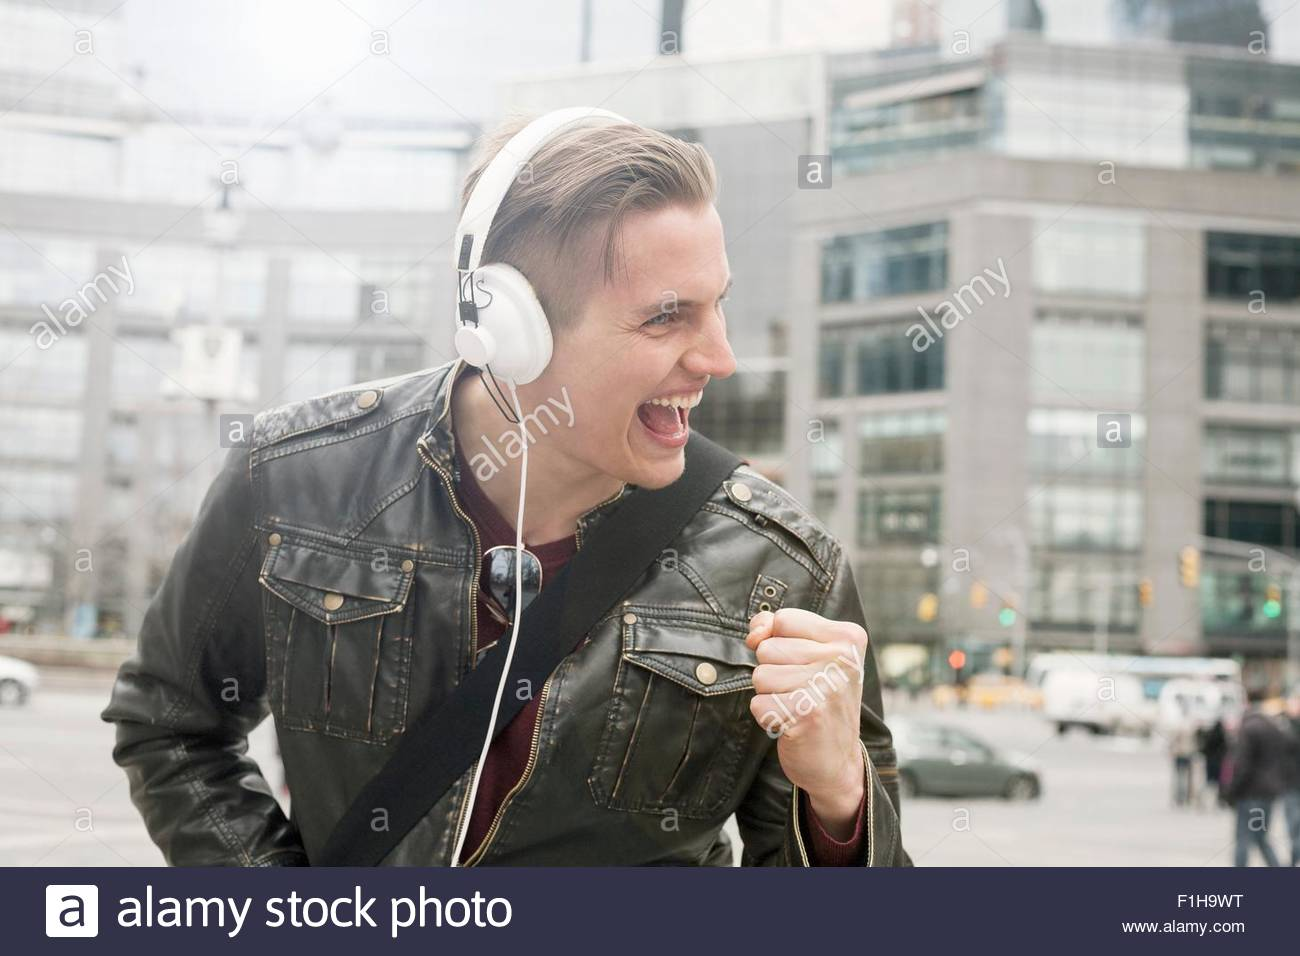 Young man on street listening to headphones with clenched fist,  New York, USA - Stock Image